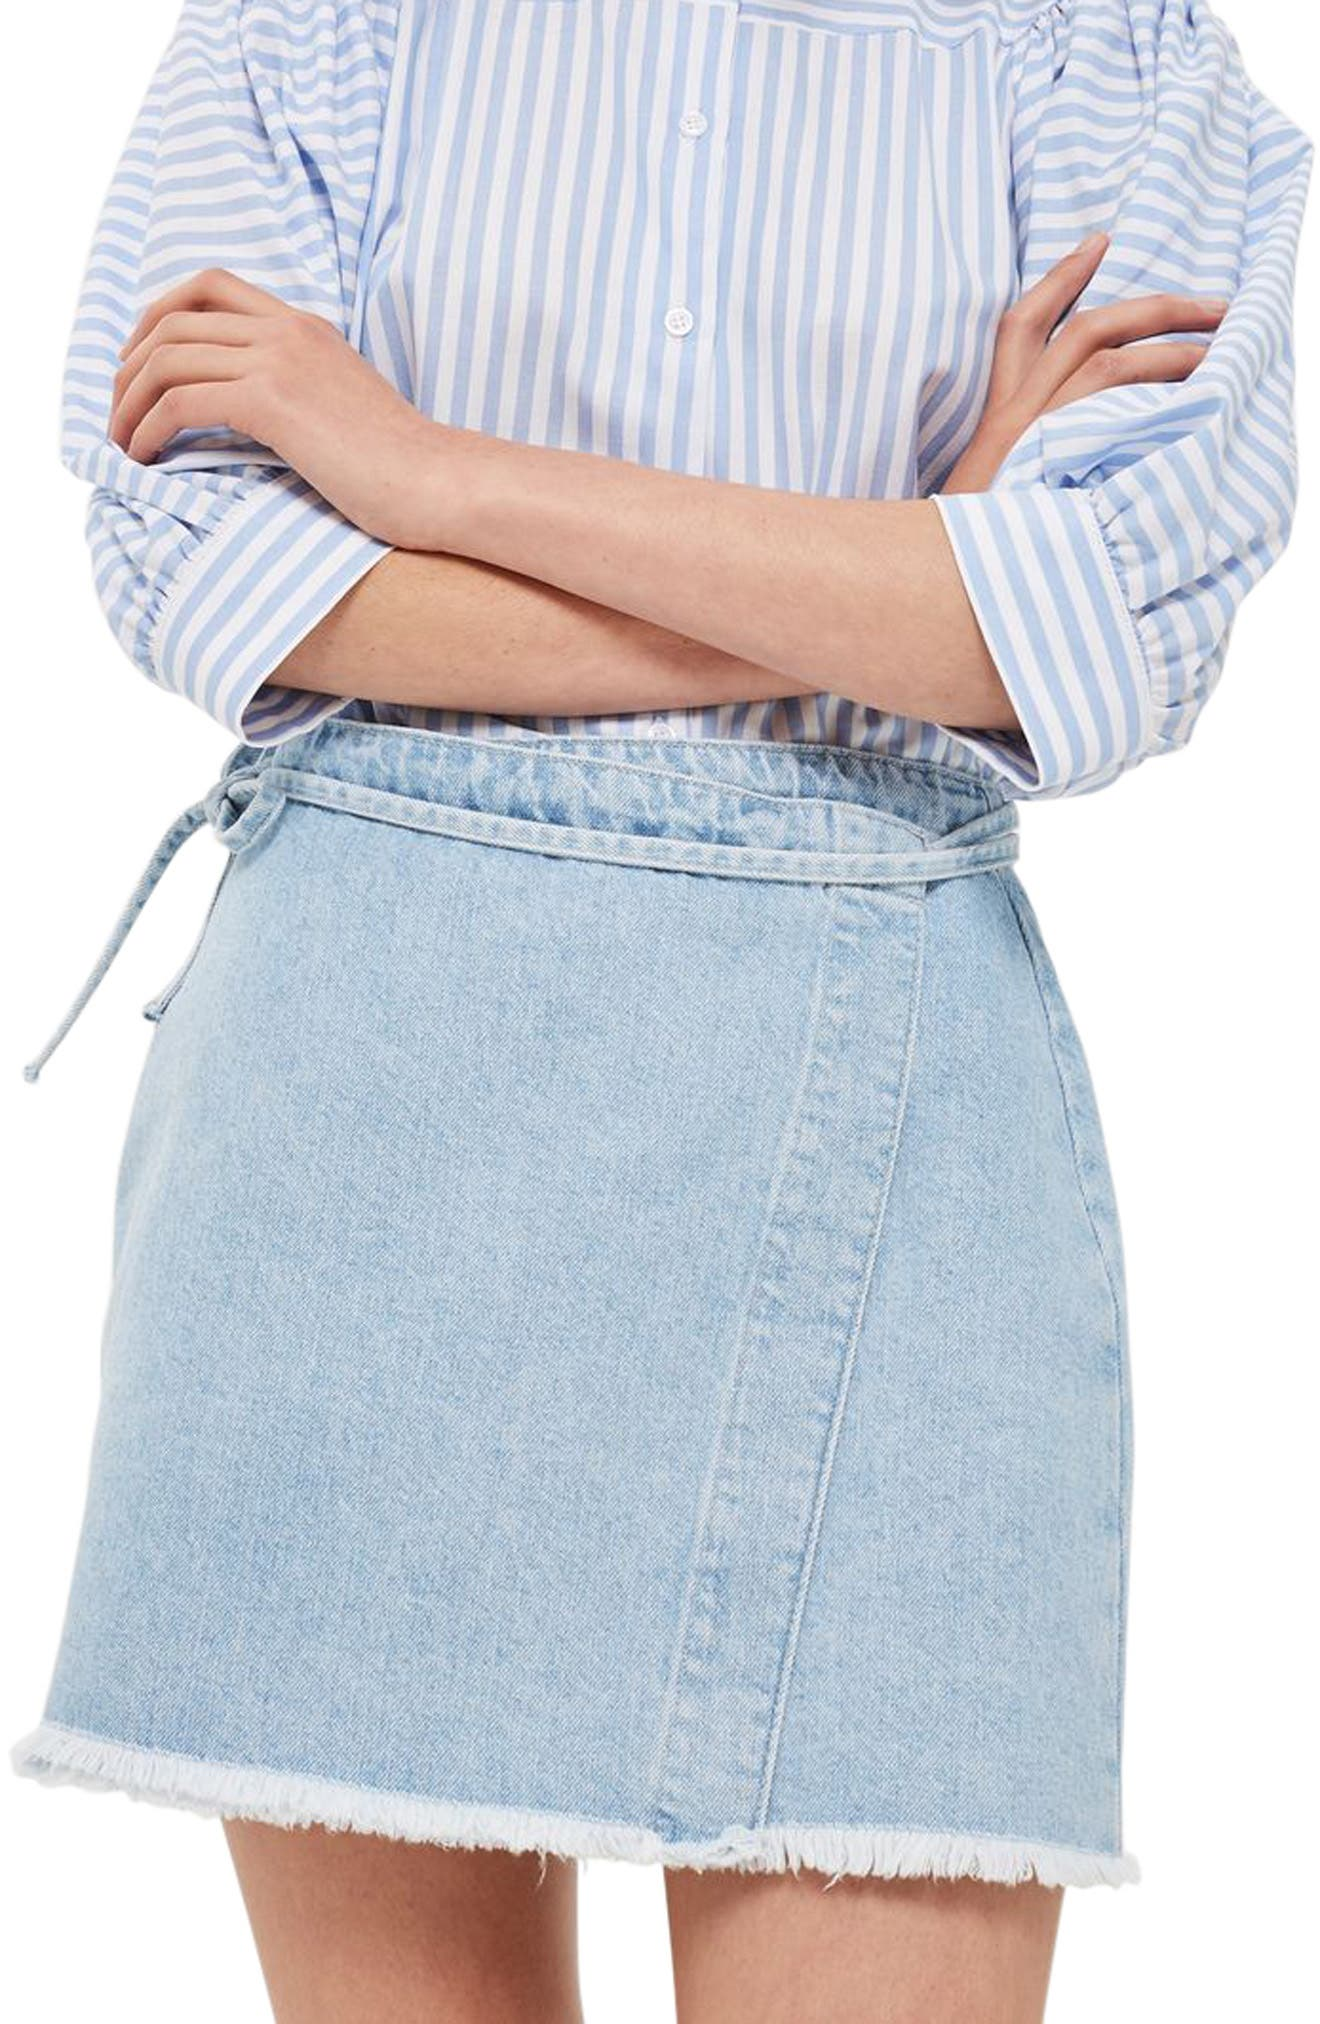 Topshop Tie Wrap Denim Skirt